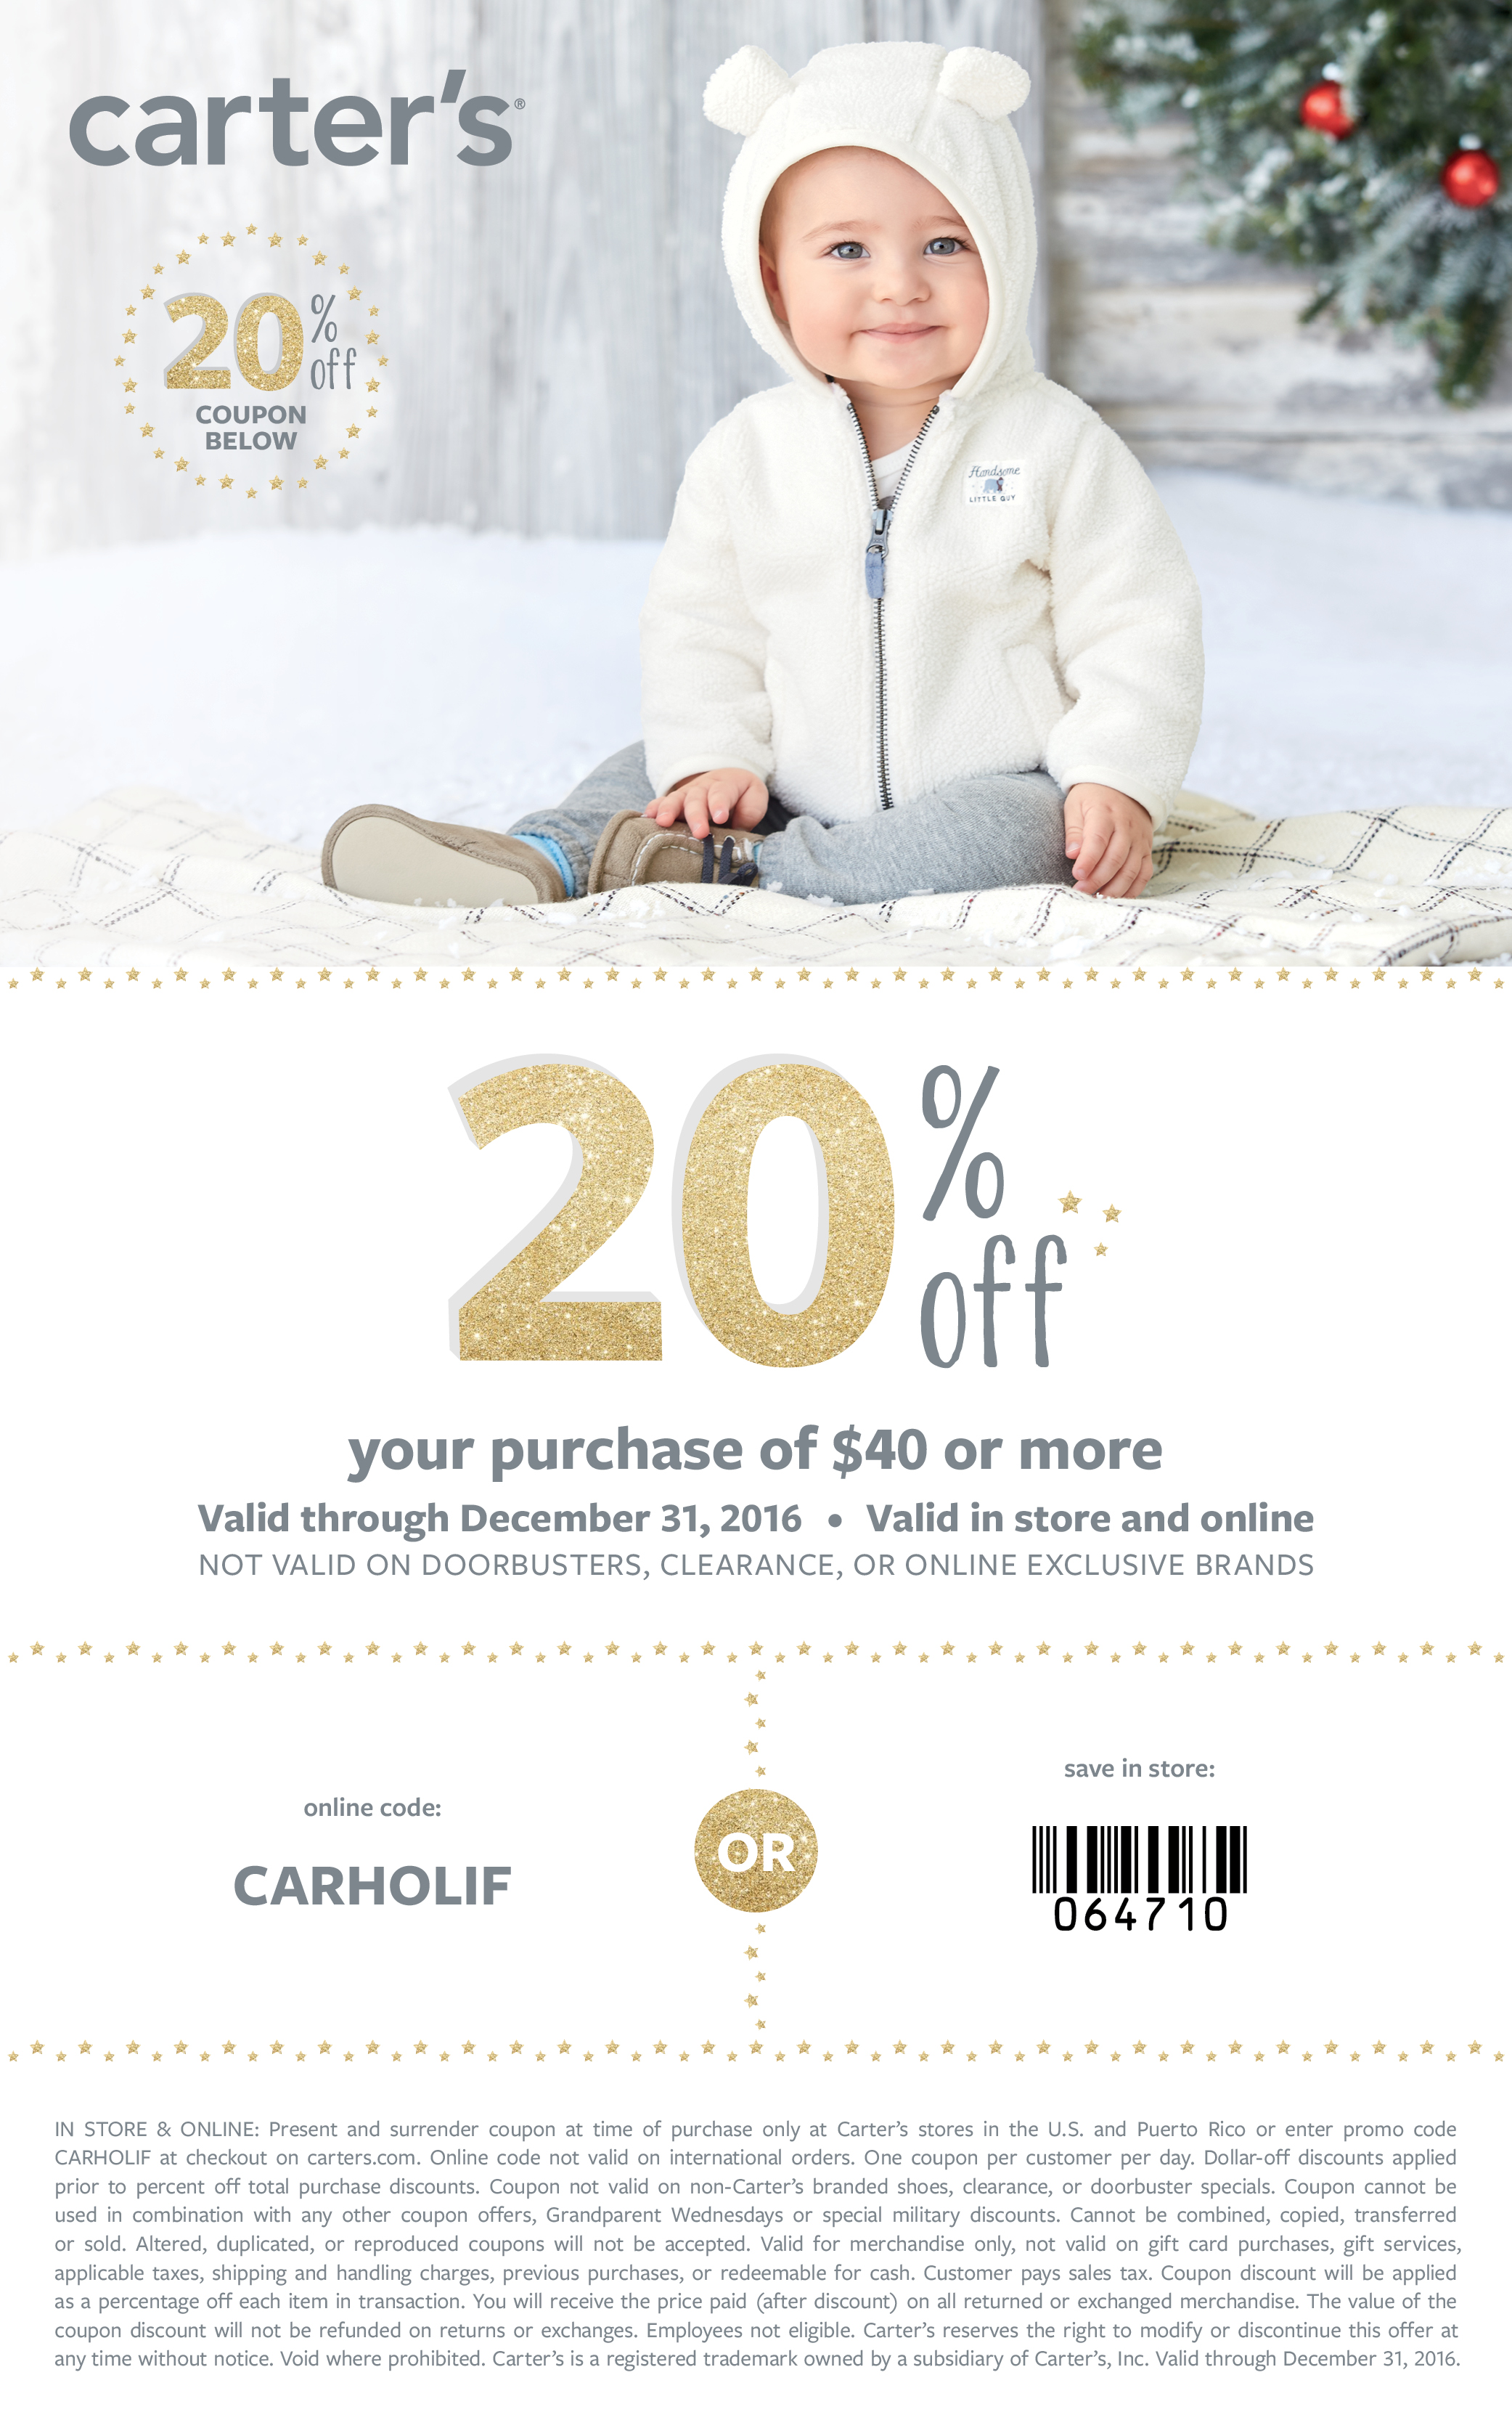 Carter's 20% off printable coupon for holiday shopping